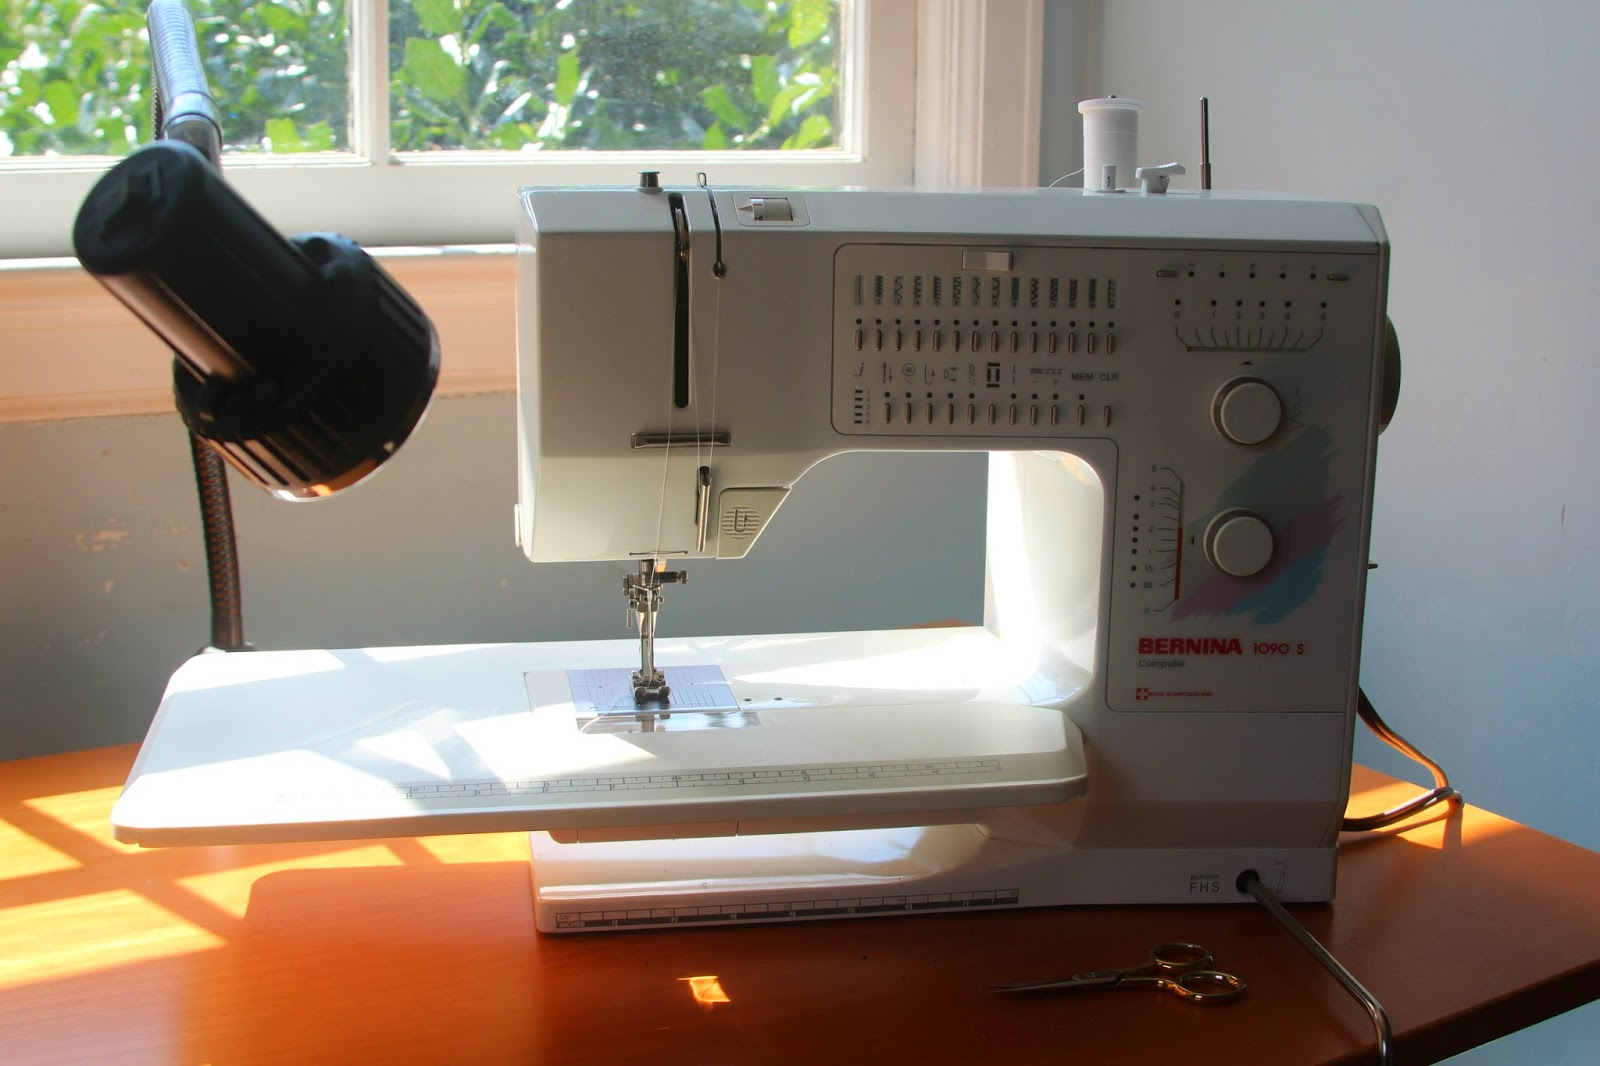 As a form of talk therapy, I want to tell you about my history with Bernina.